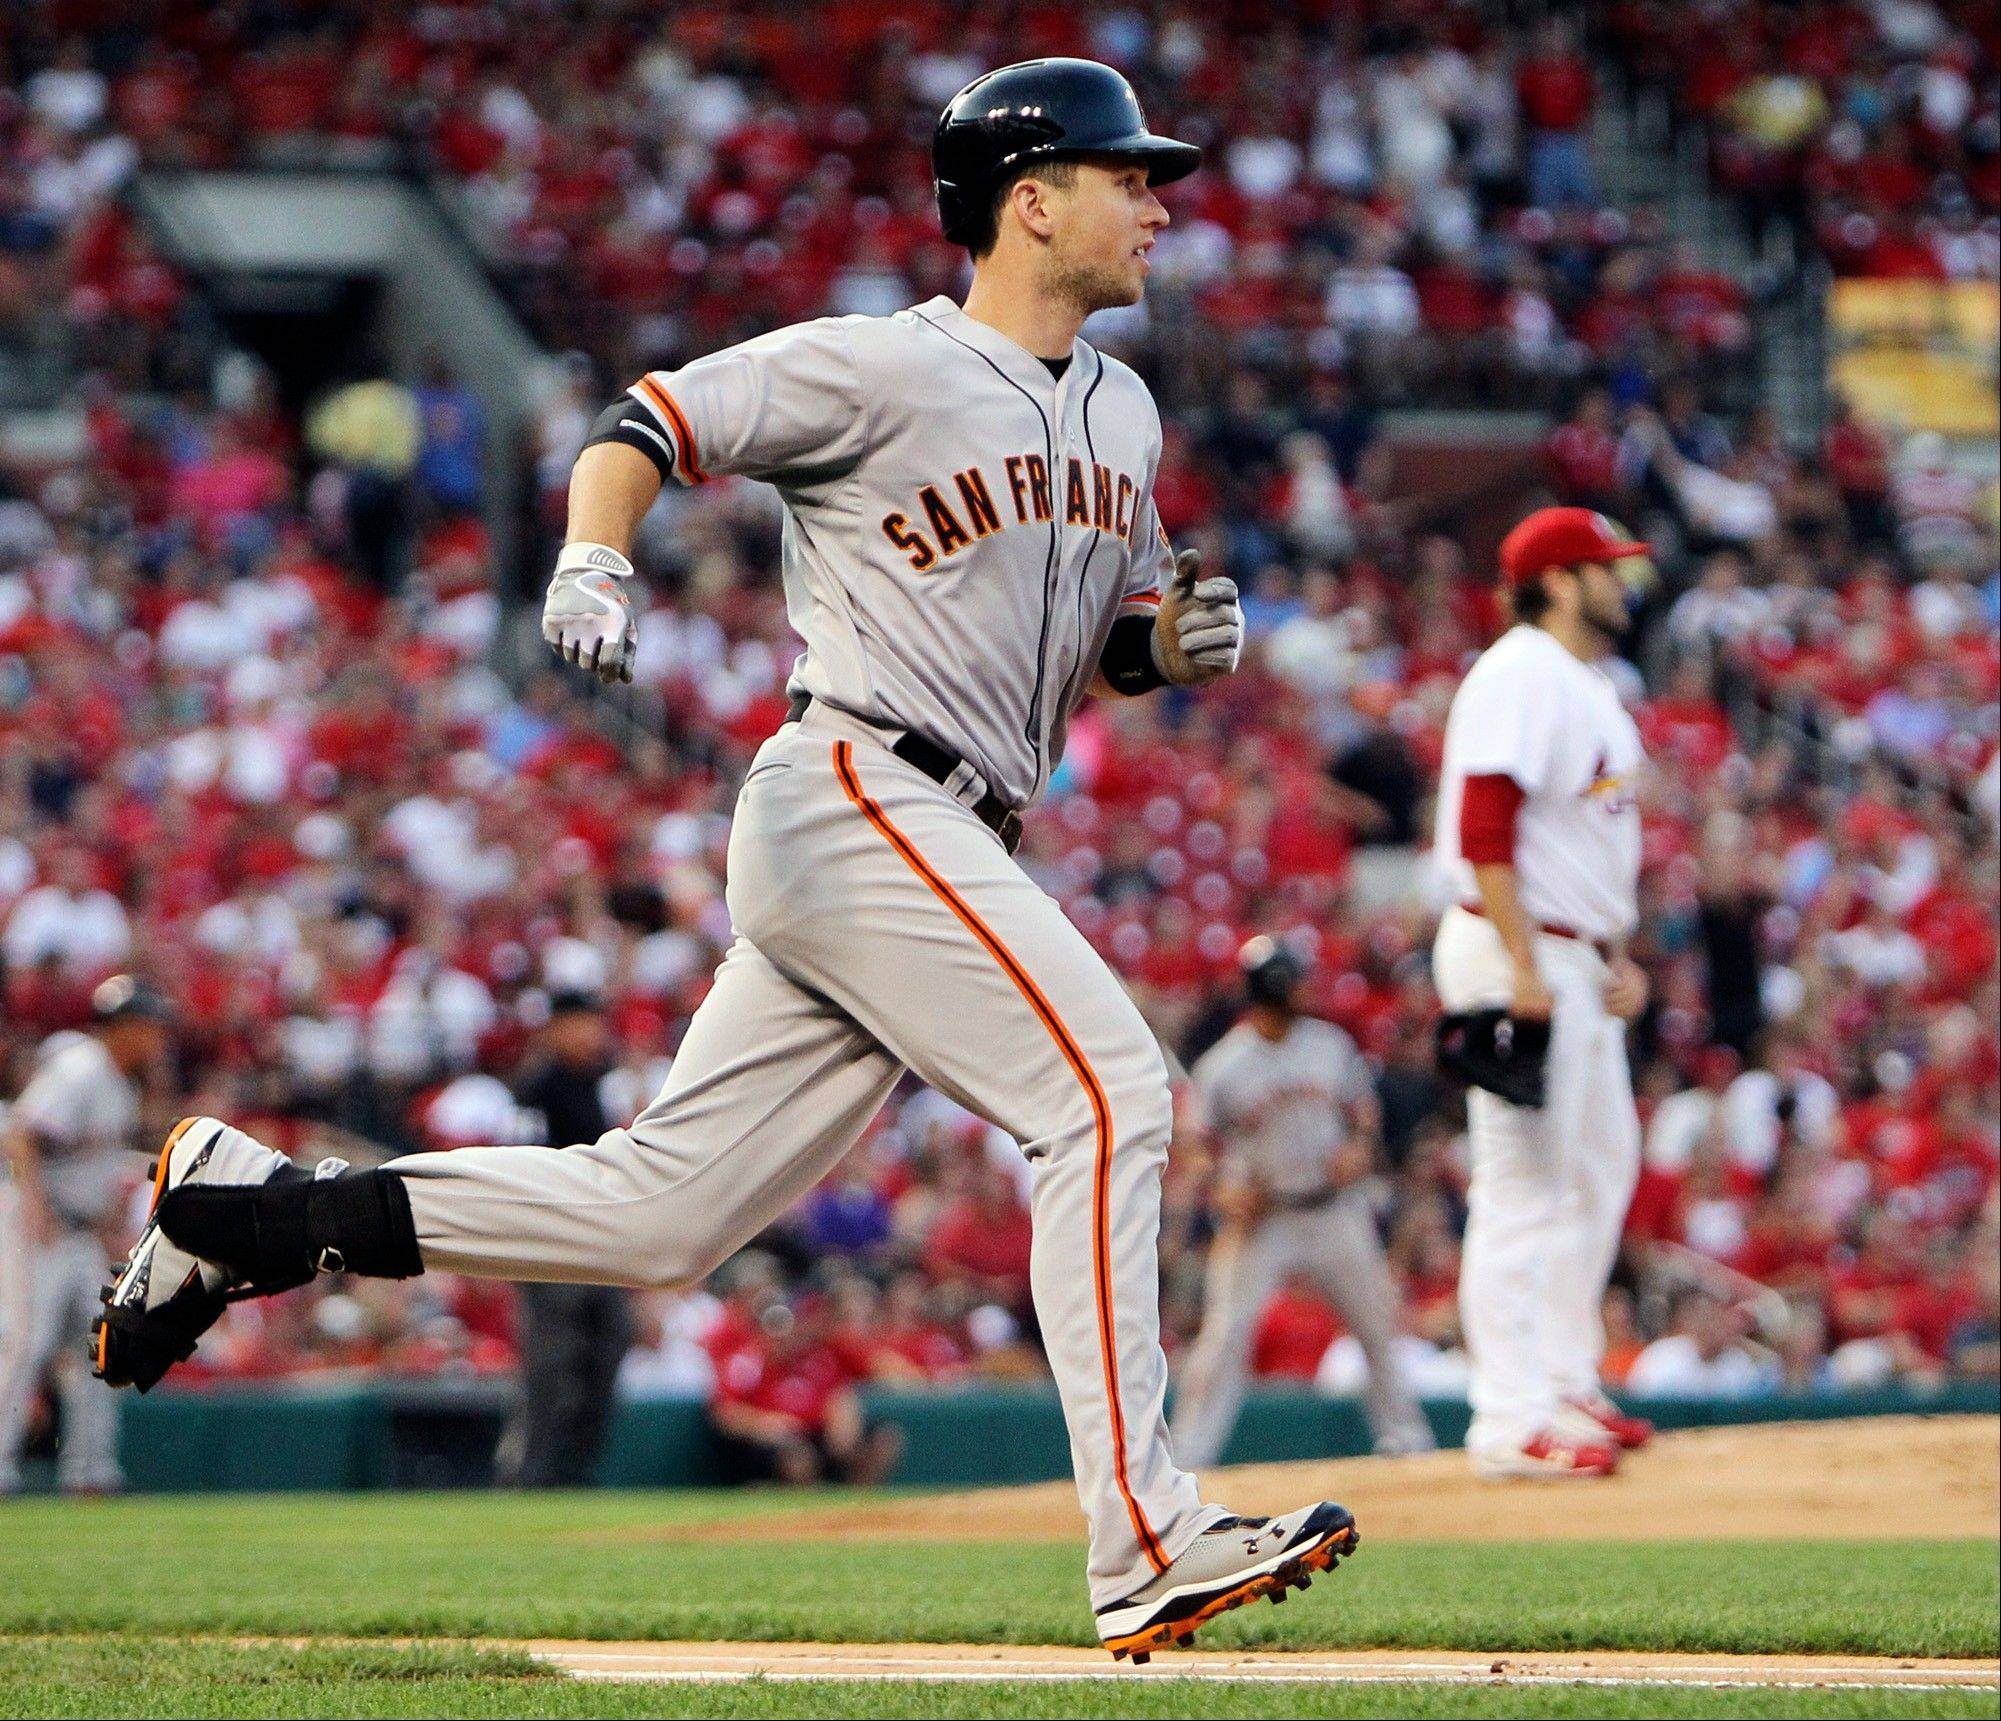 The Giants' Buster Posey rounds the bases after hitting a three-run home run off Cardinals starting pitcher Lance Lynn in the first inning Tuesday in St. Louis.